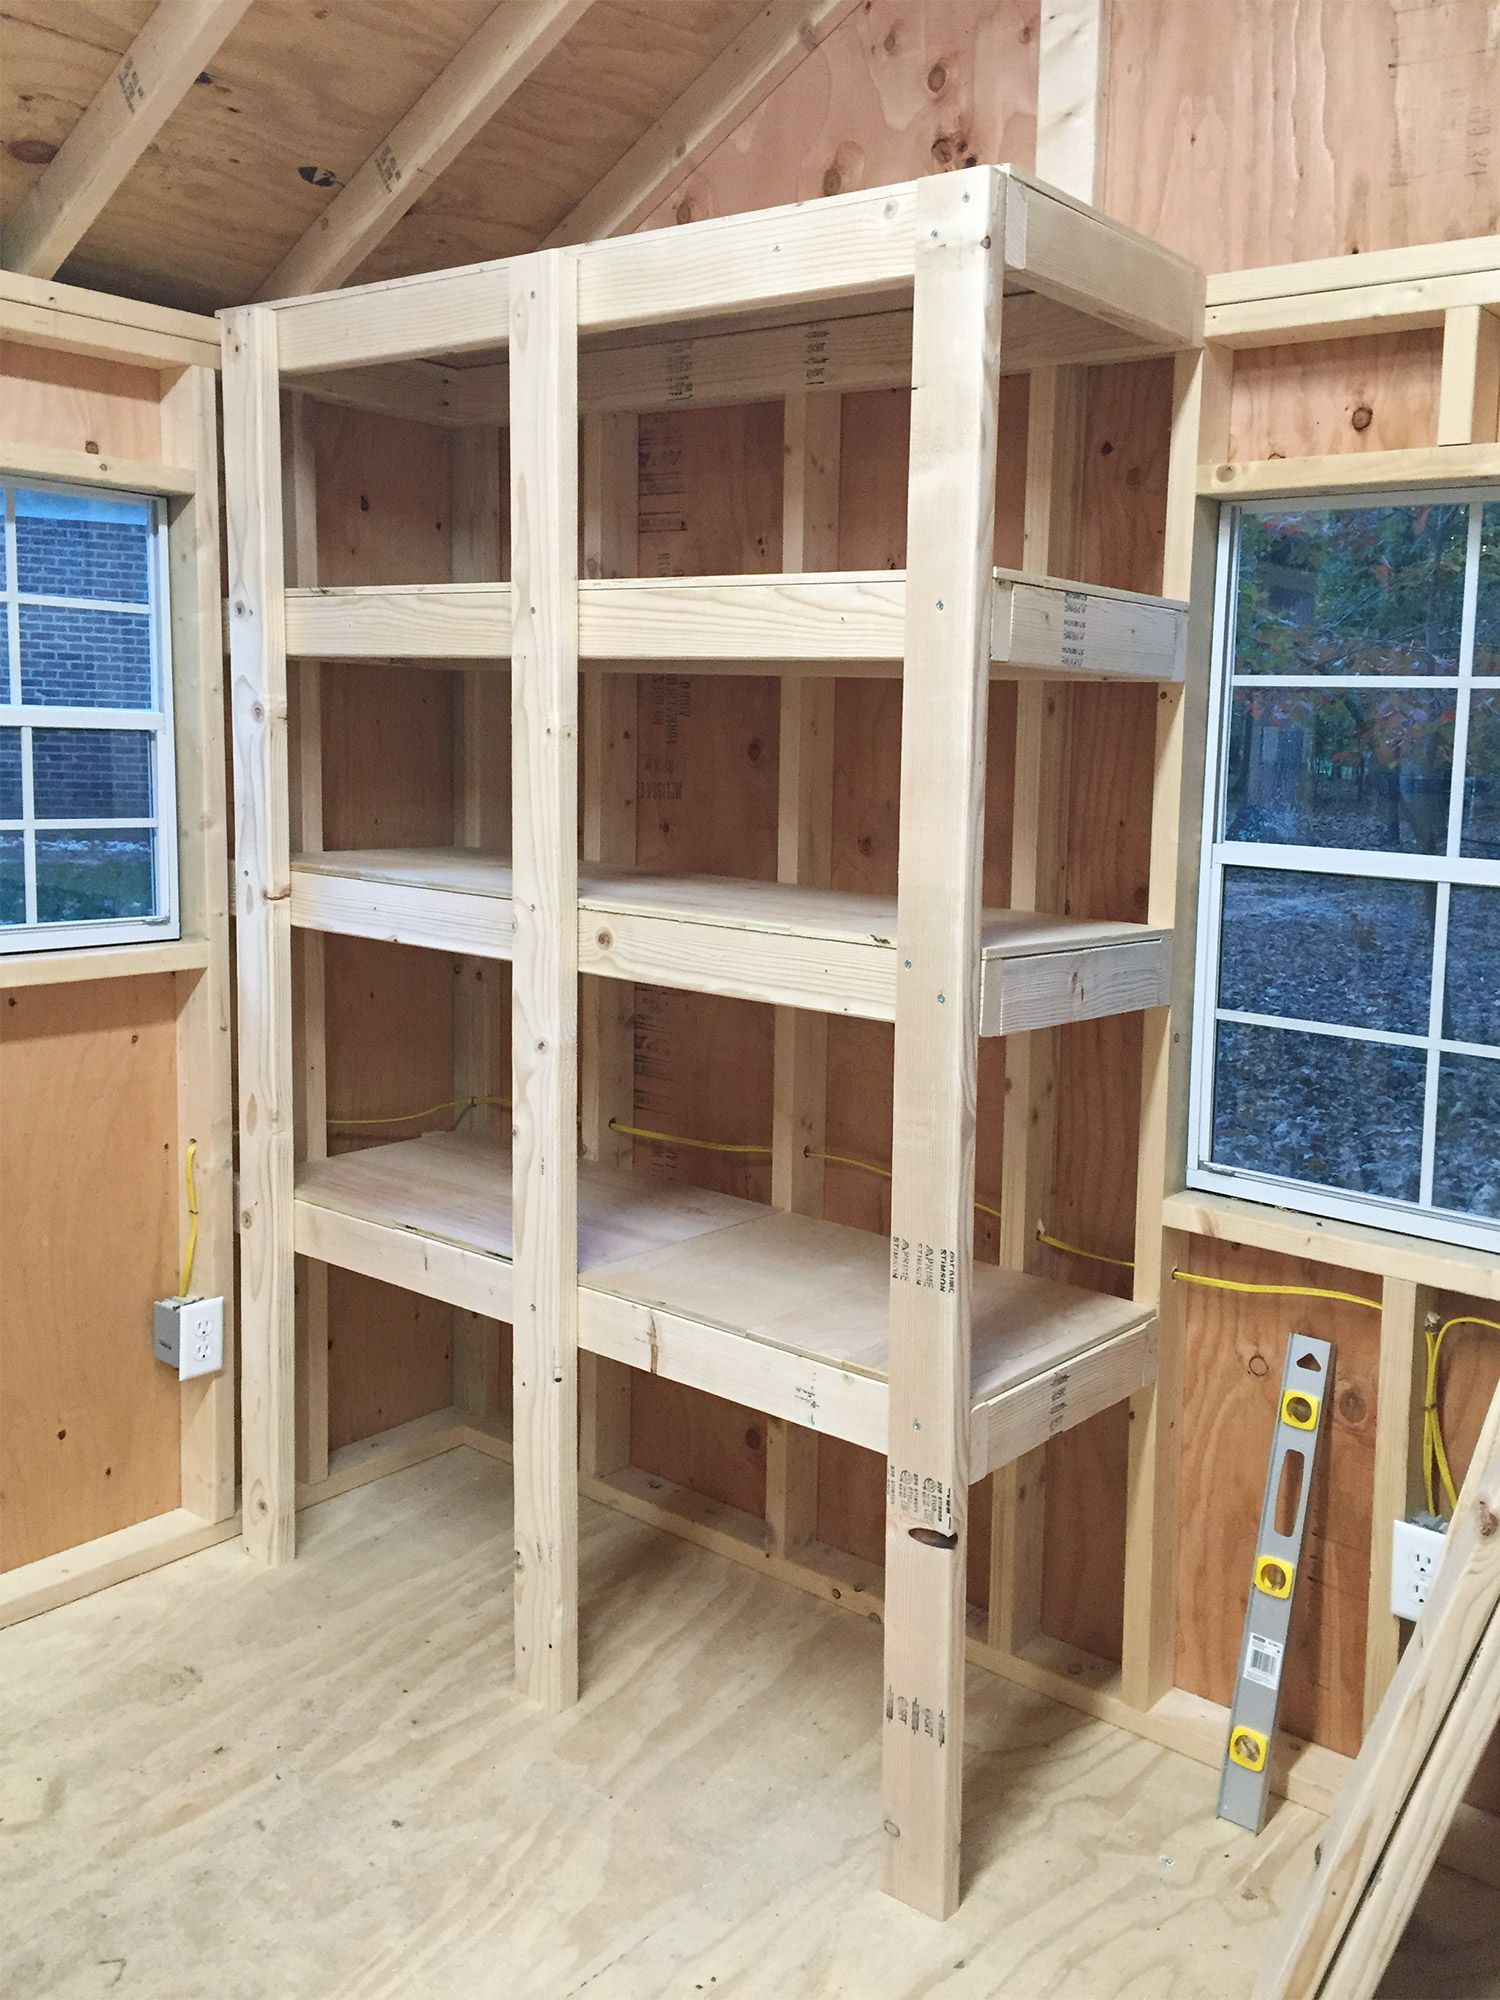 4 shed storage ideas for tons of added function diy wood